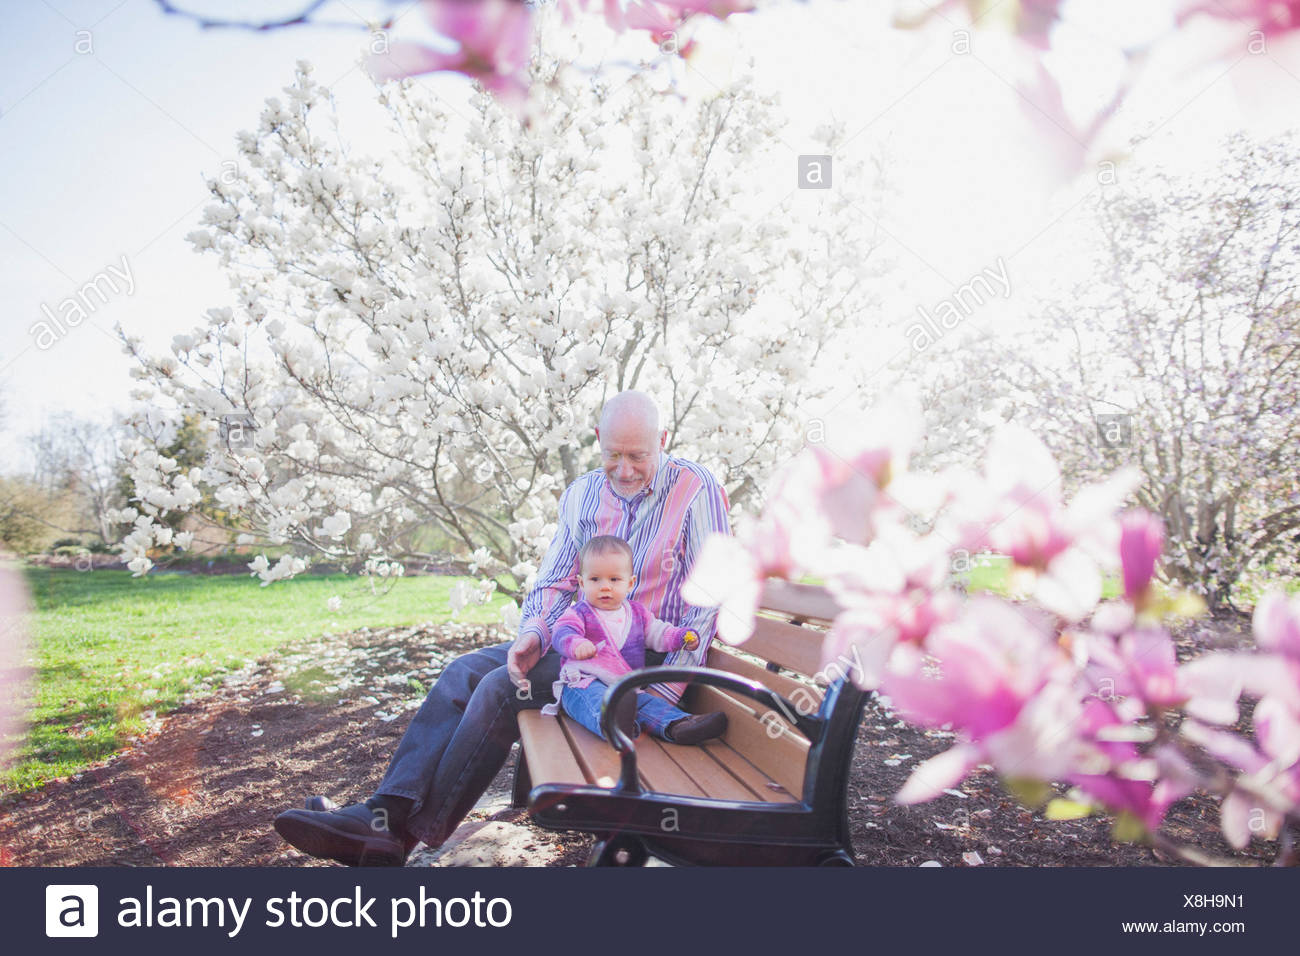 Grandfather and grandchild on park bench - Stock Image